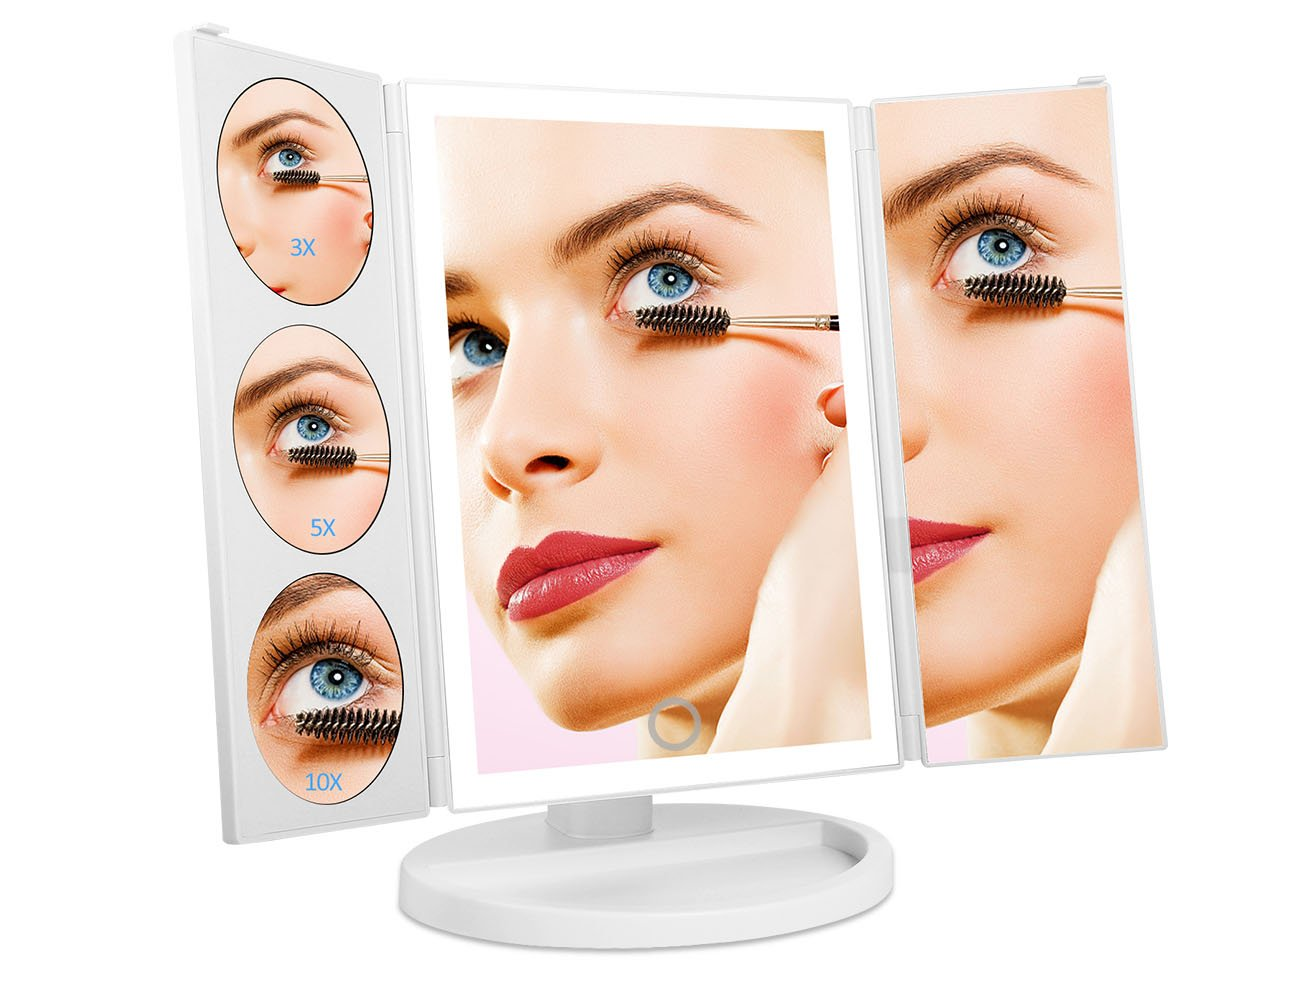 Makeup Vanity Mirror II Oversized by LIANPENG with 38pcs LED Lights High Brightness, 3 x 5x 10x Magnification Sections Lighted Mirror with Sensor Brightness Control, 180° Rotatable,Perfect Gift(White)